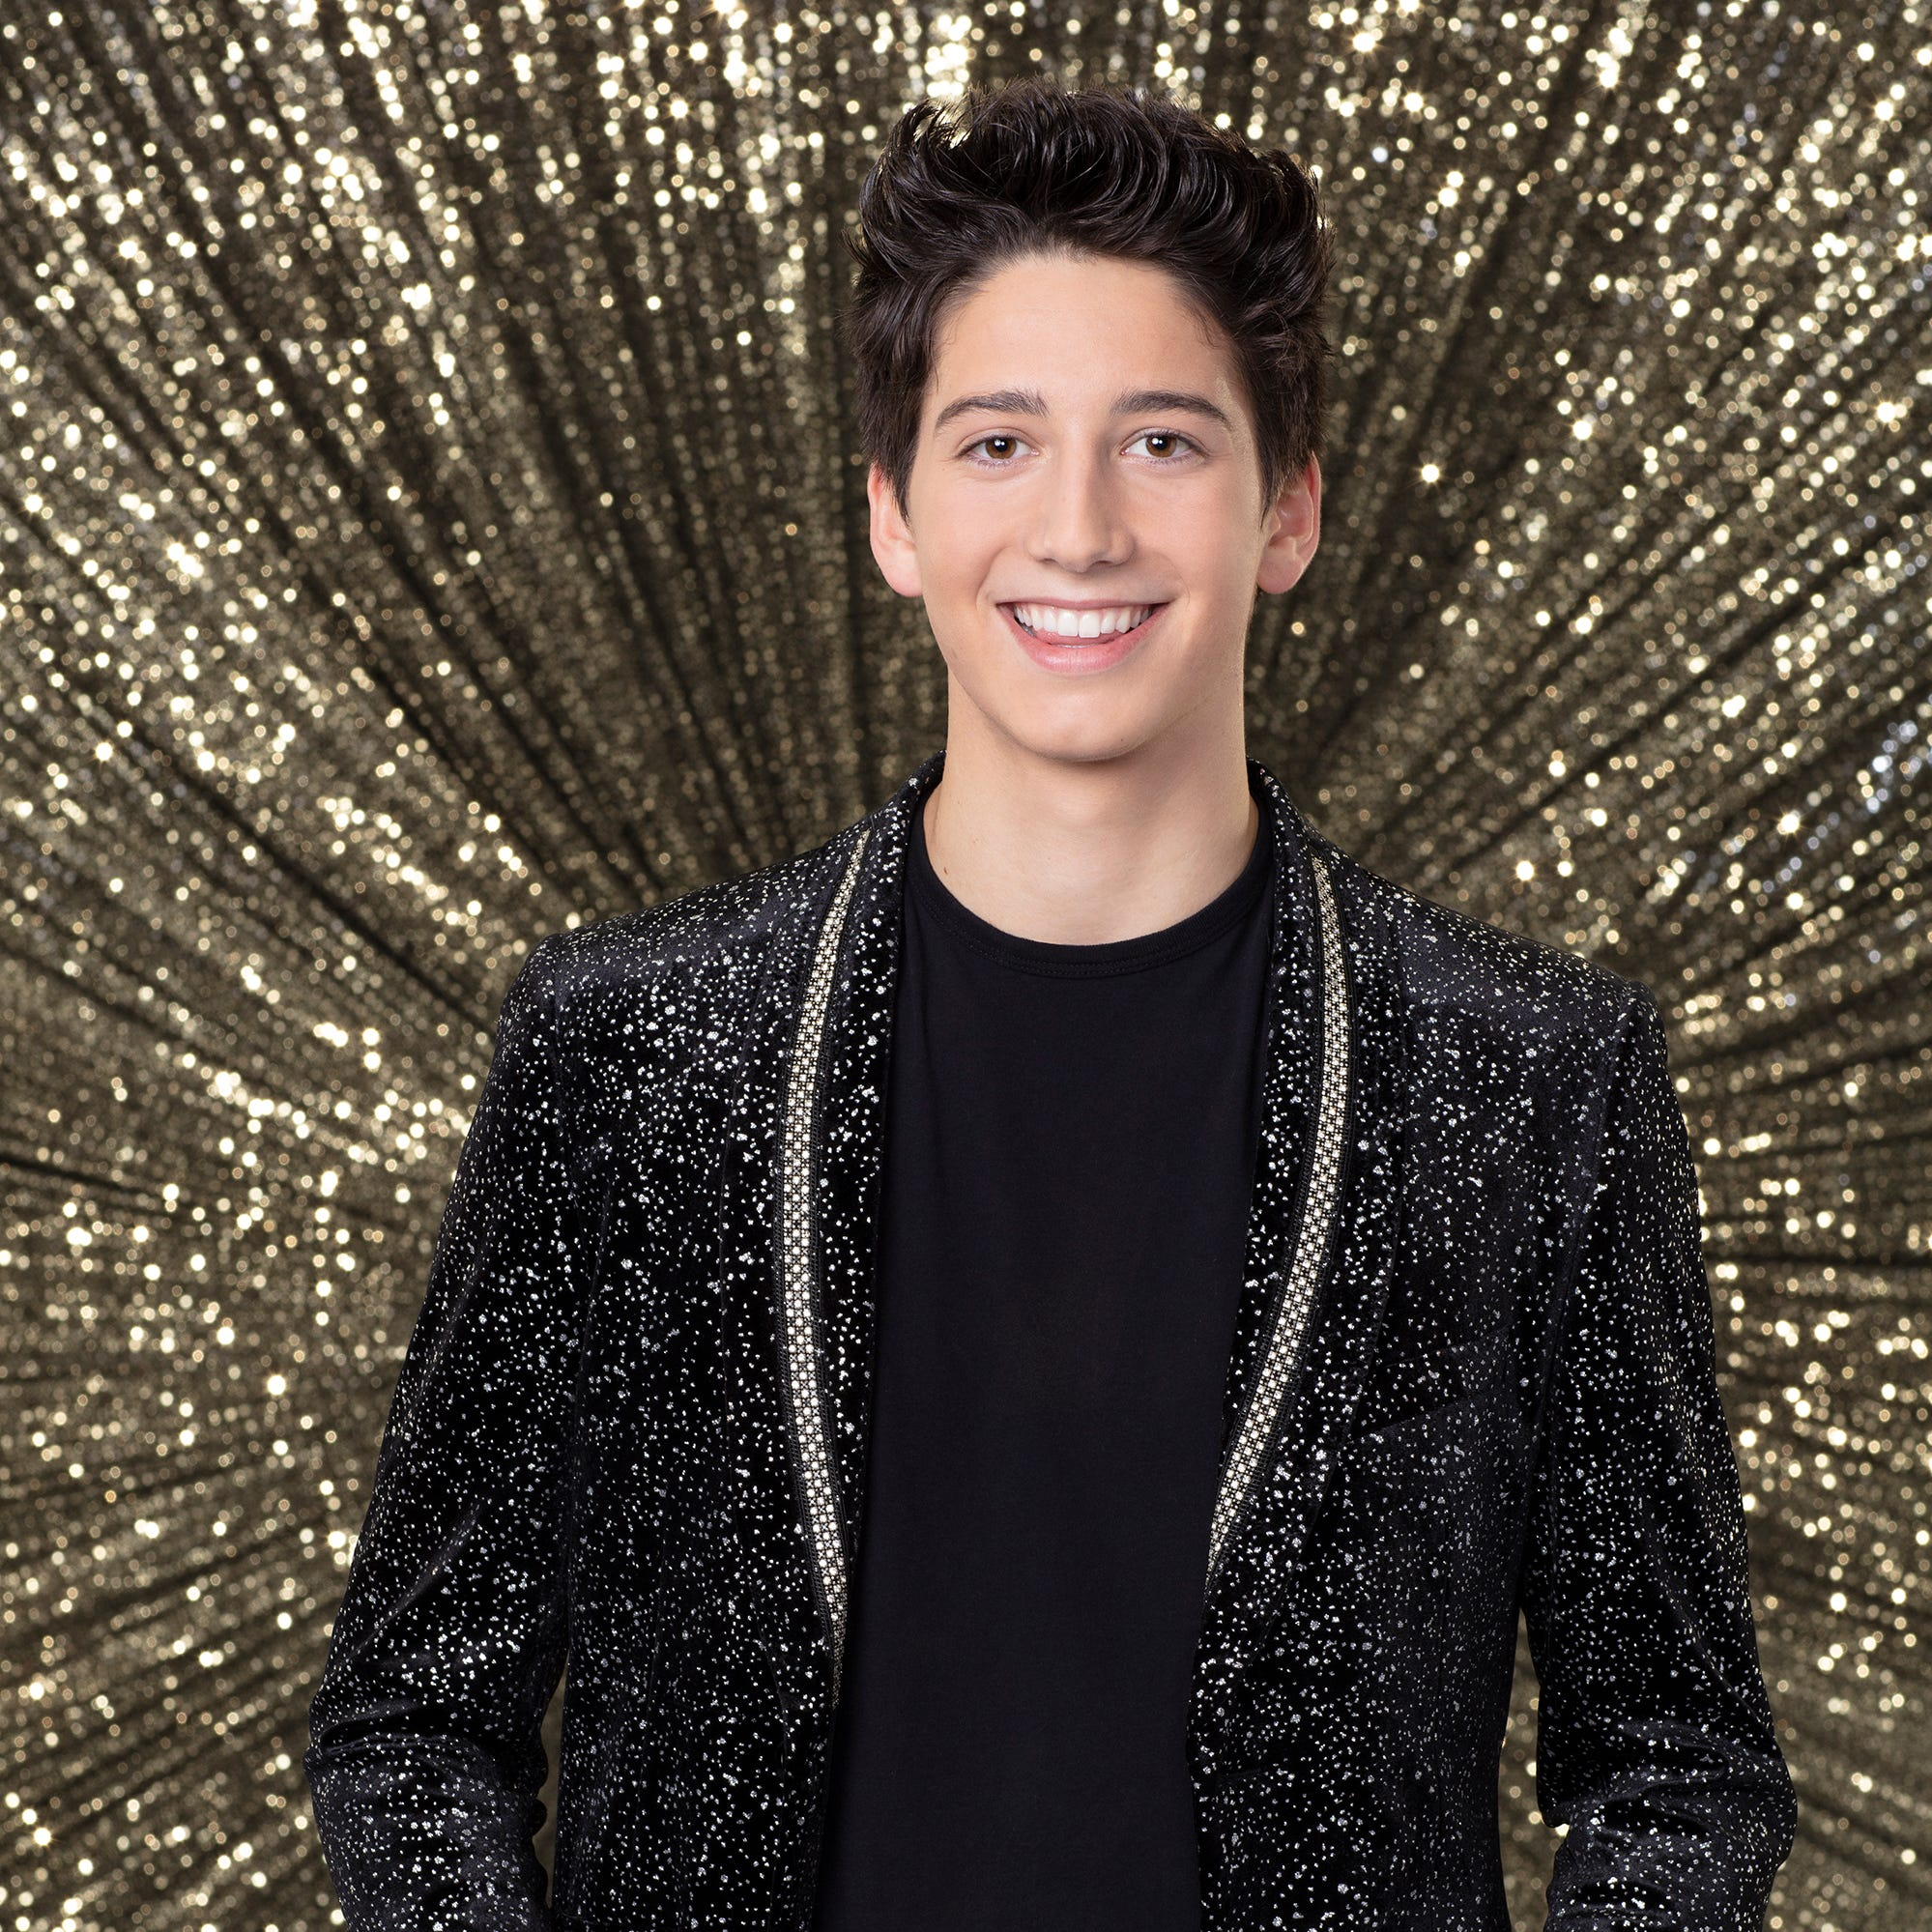 'Dancing with the Stars' frontrunner Milo Manheim preparing for a perfect 10